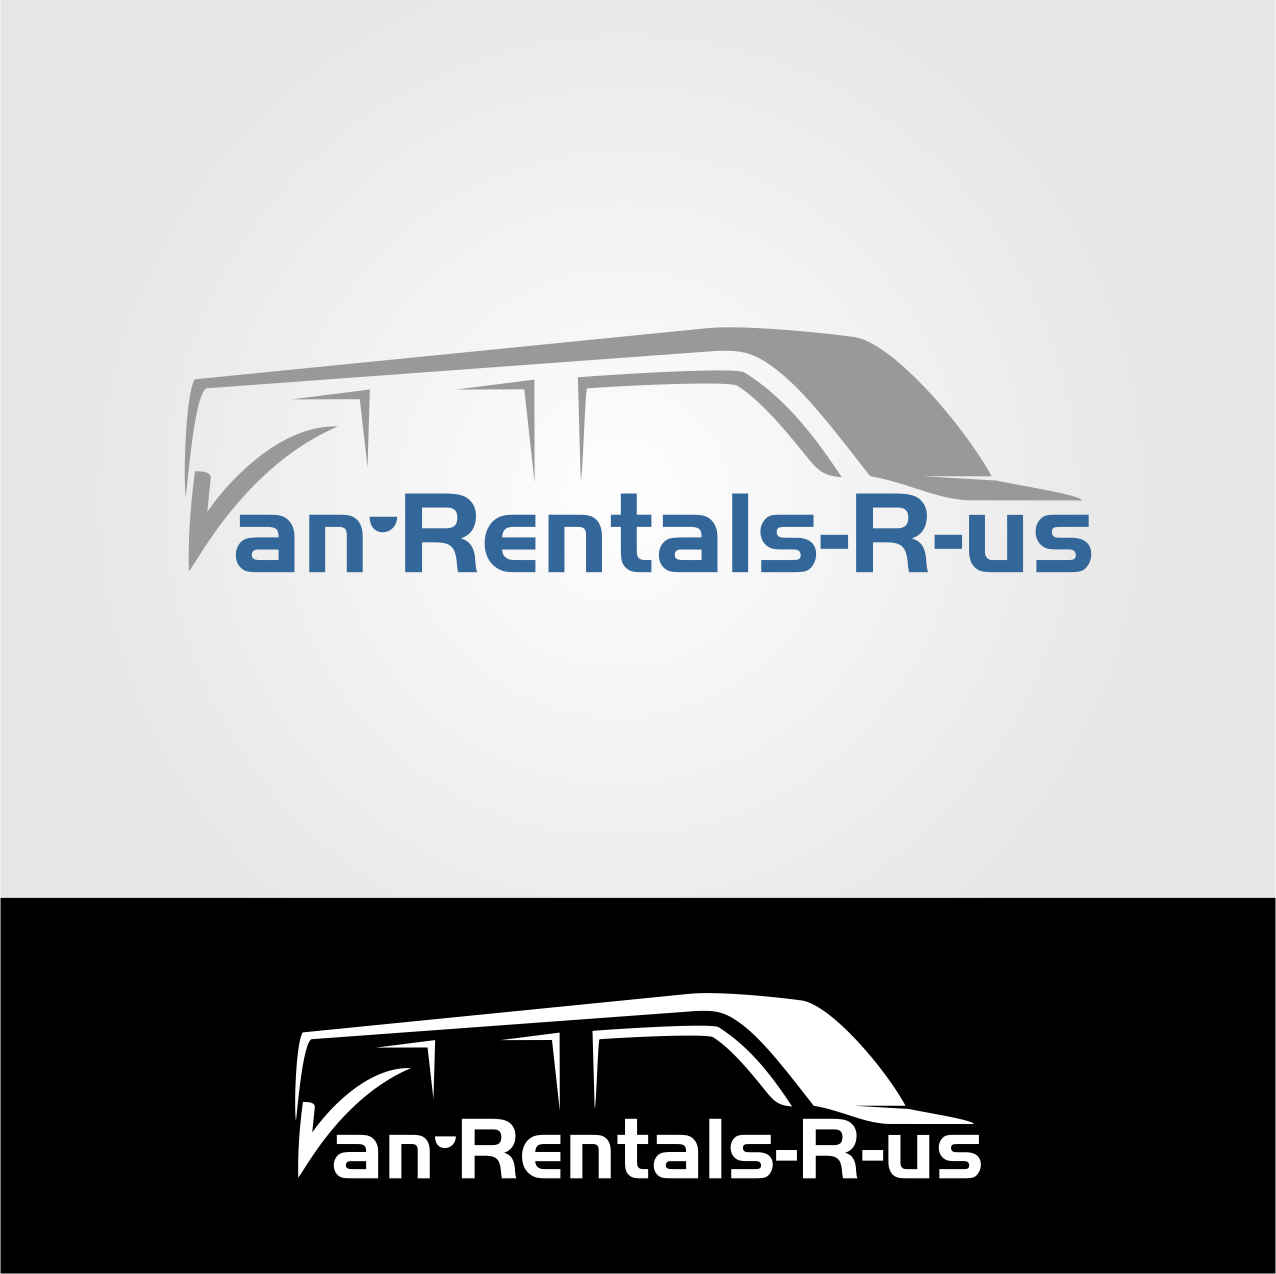 business logo design for van rentals r us by lasri design 15101438. Black Bedroom Furniture Sets. Home Design Ideas